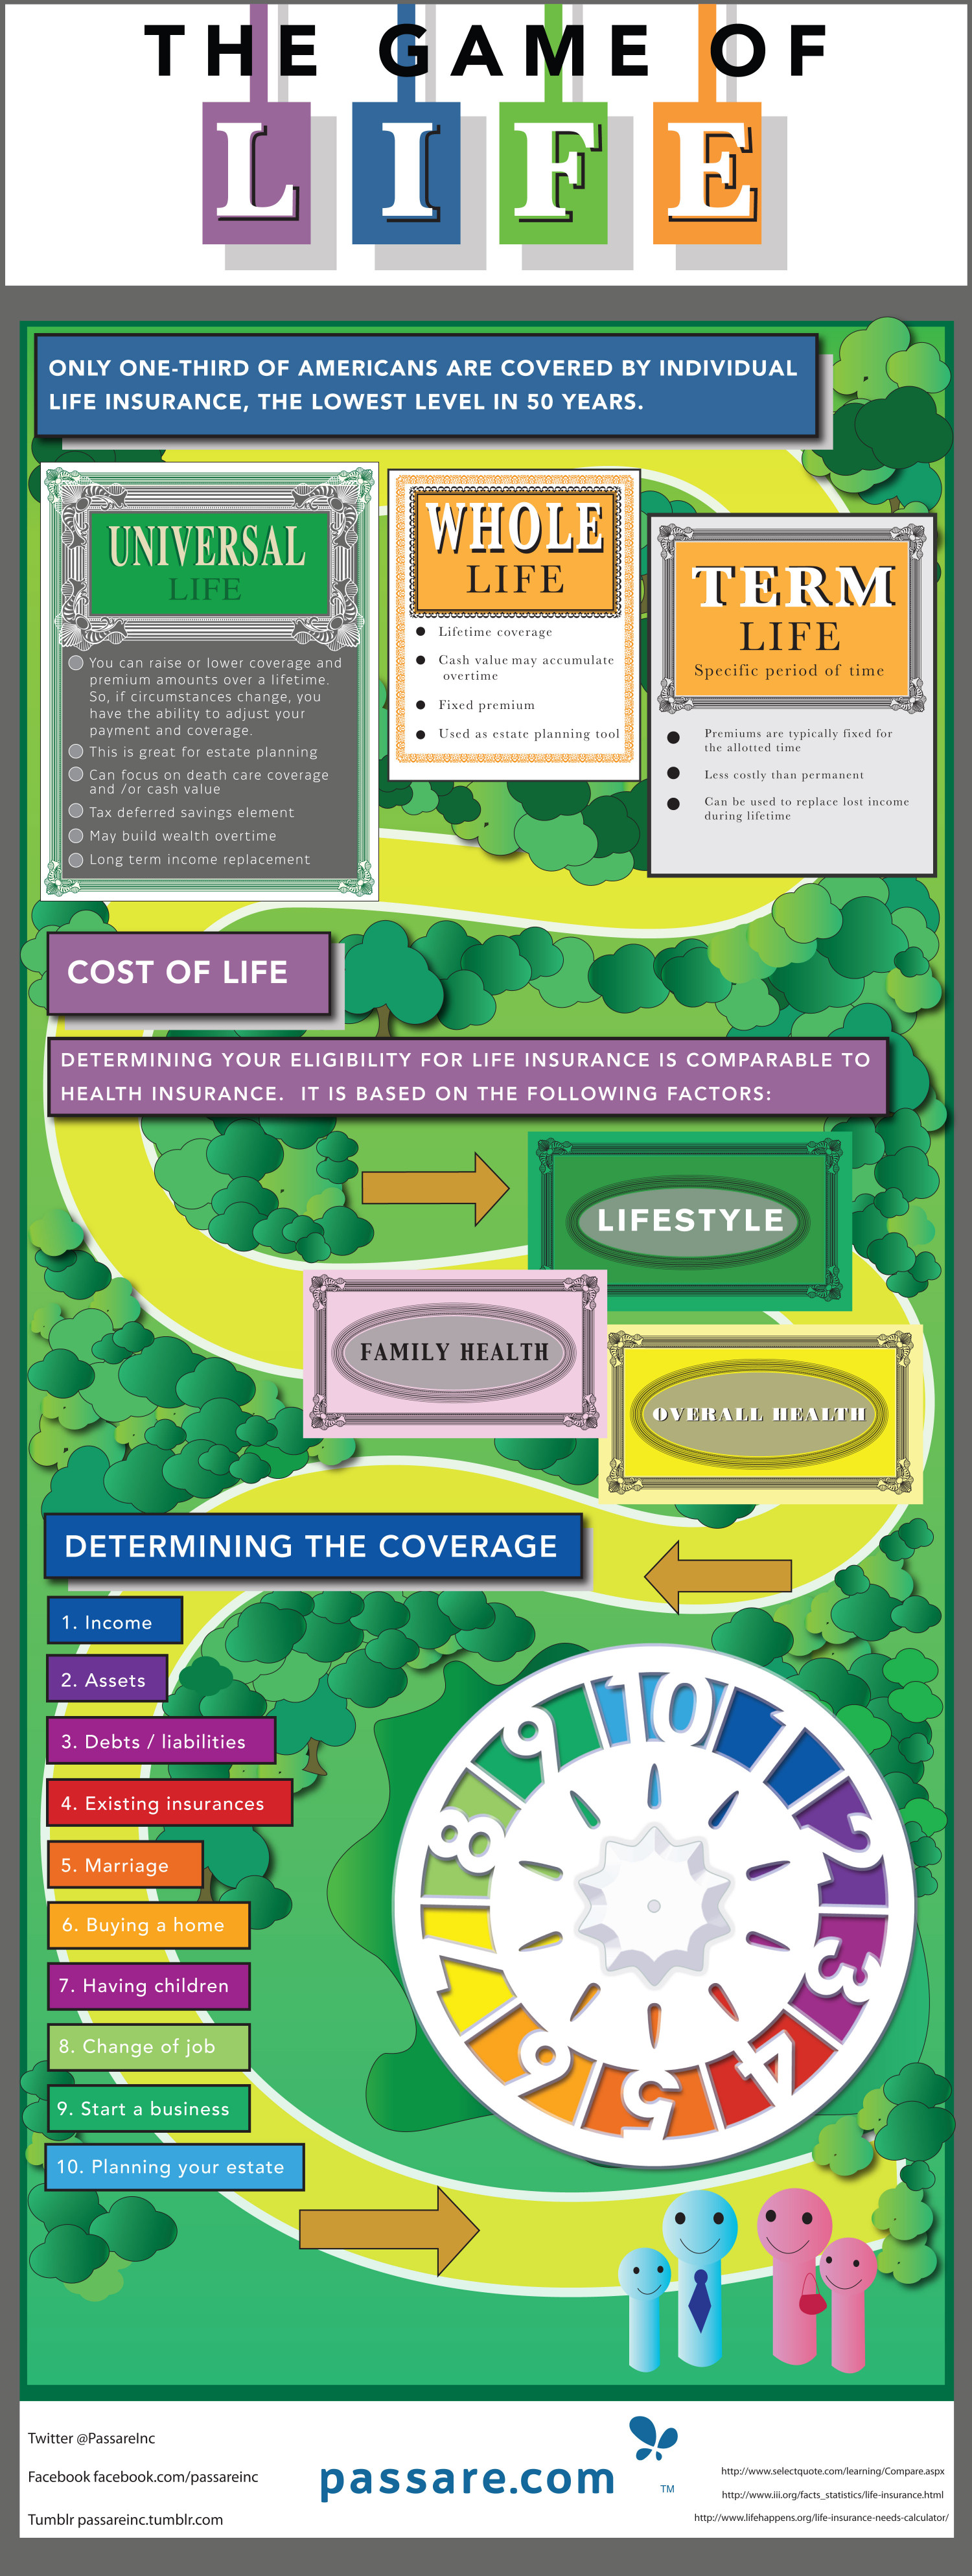 The Game of Life Infographic